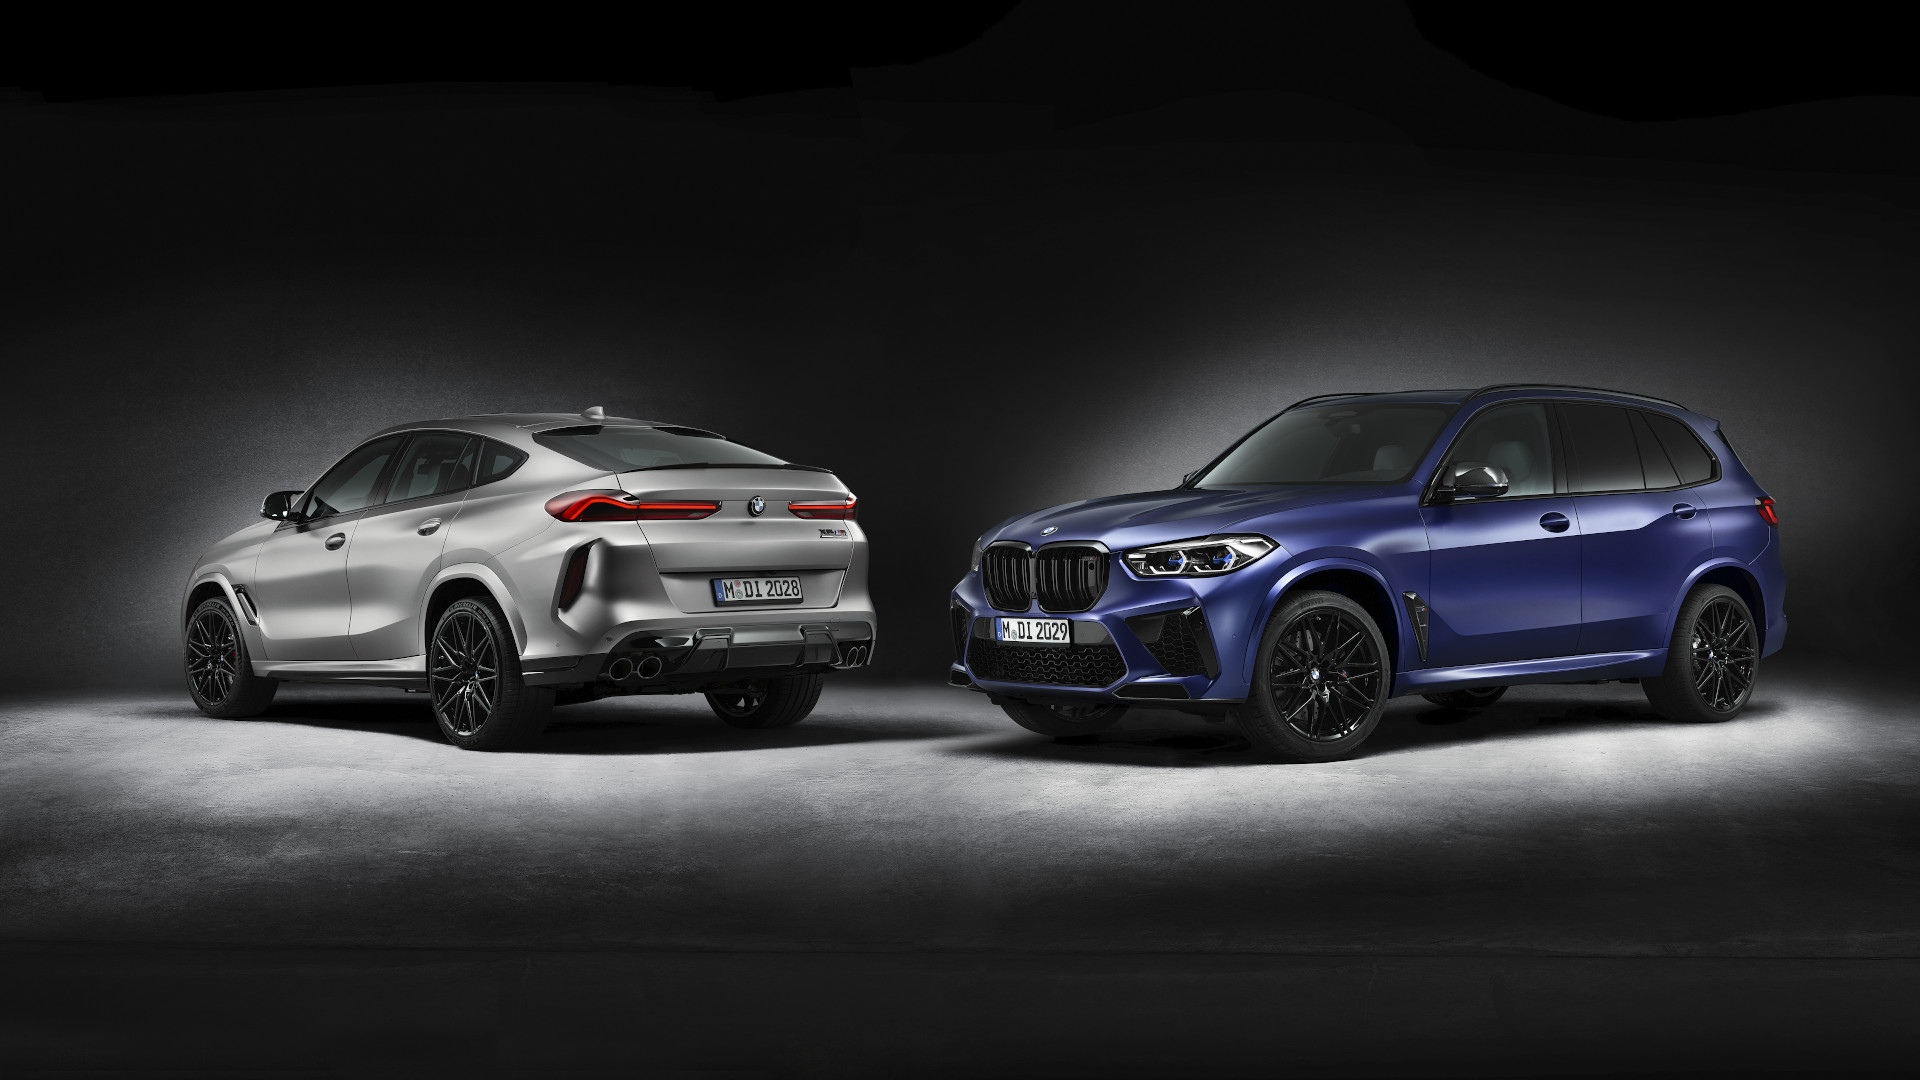 Car News BMW unveils 'First Edition' variants of the X5M X6M Competition A full year after the SUVs were launched by Leandre Grecia | 10 hours ago